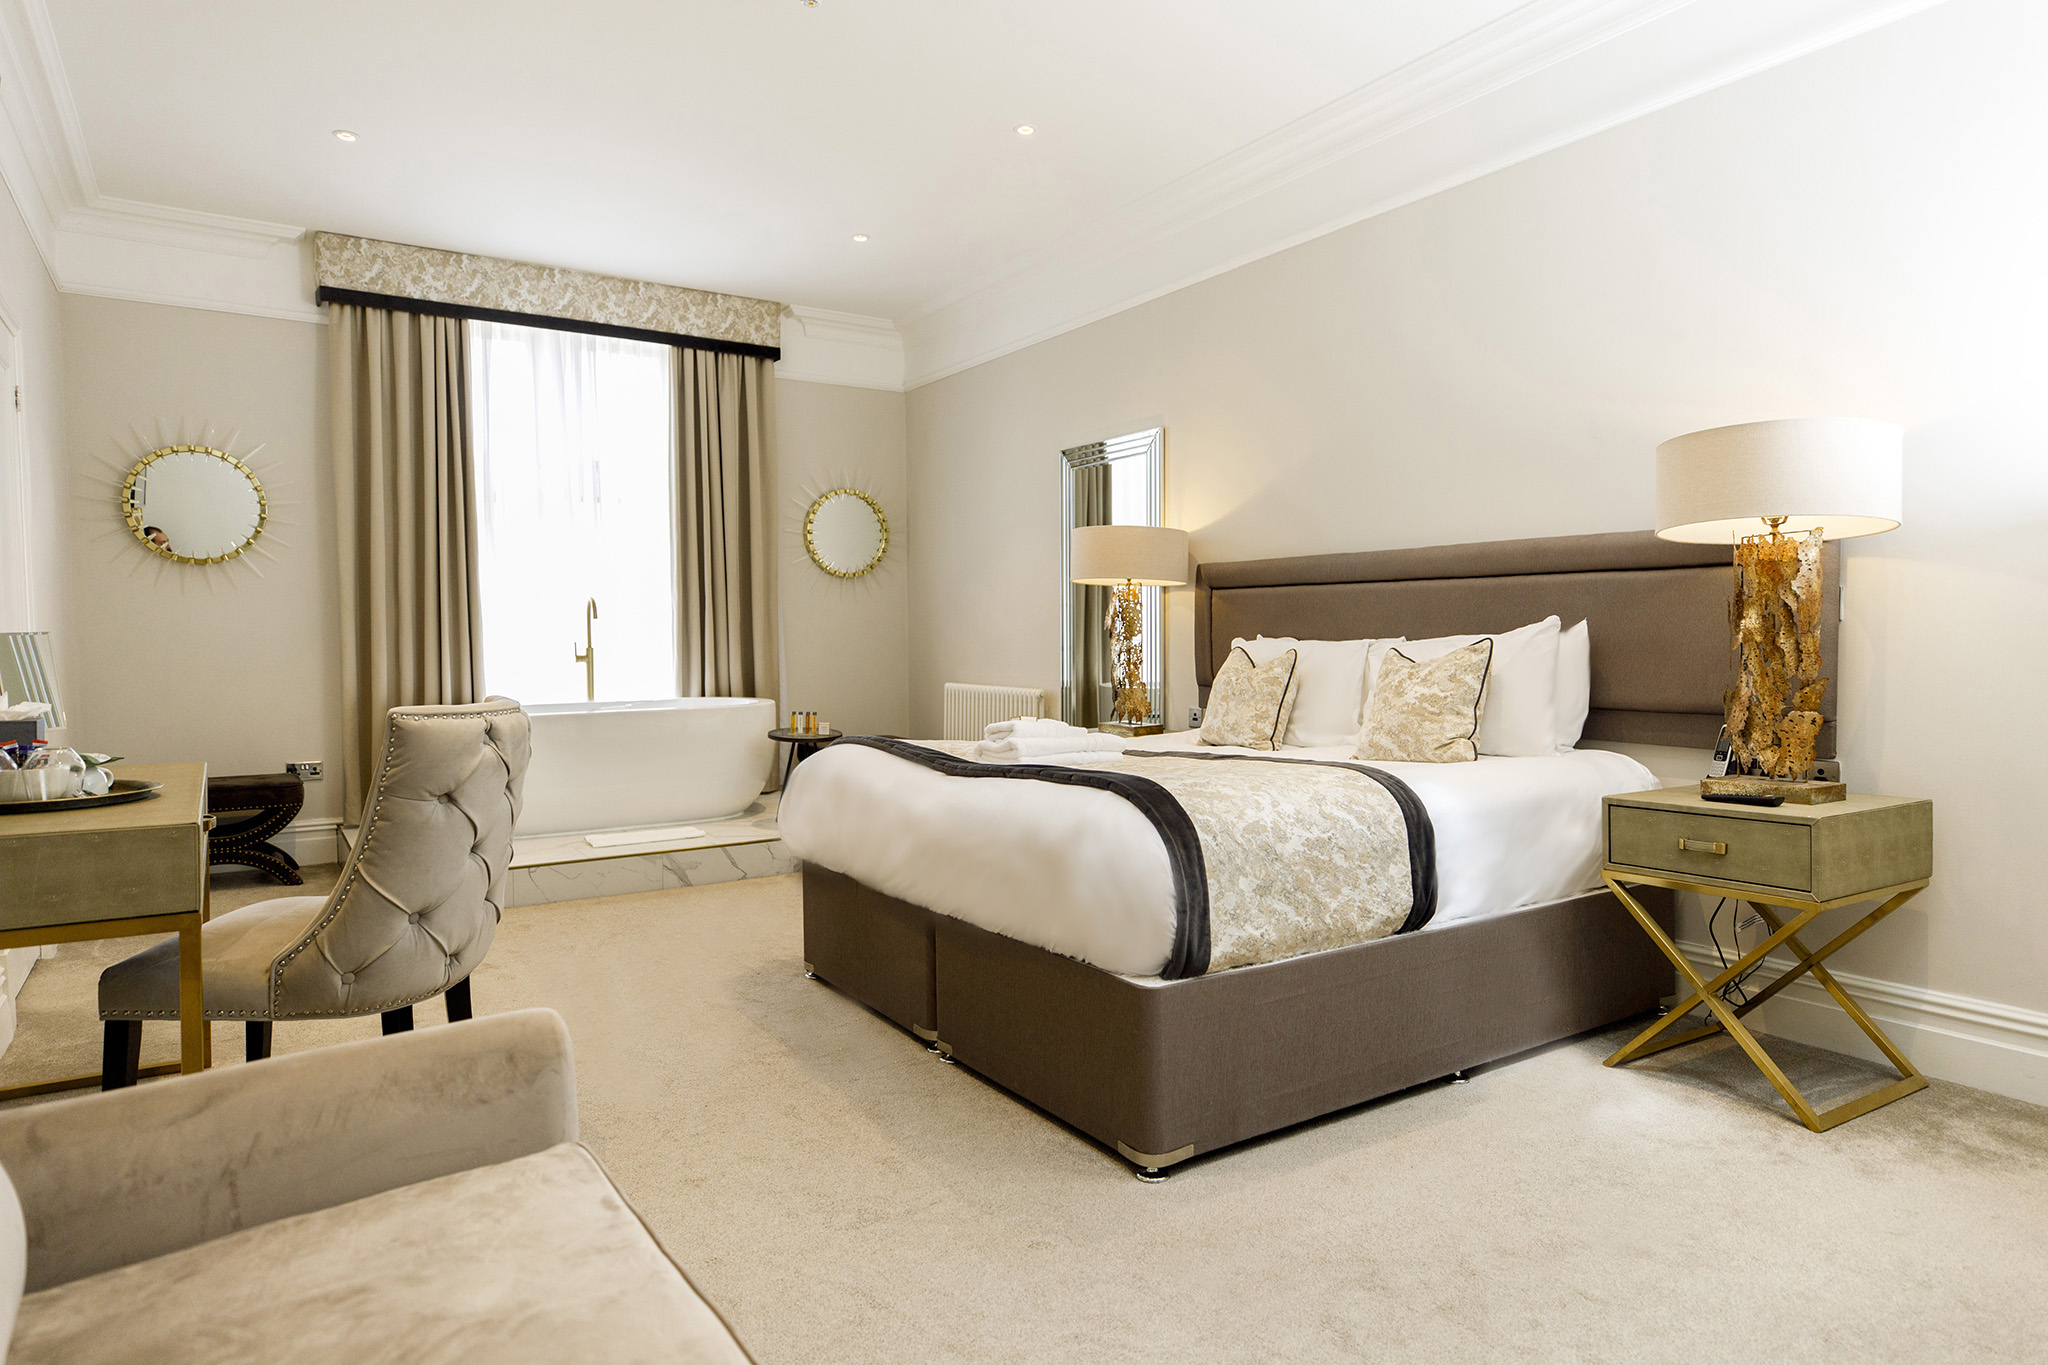 Luxury Deluxe Suite with large super king bed and free-standing bathtub